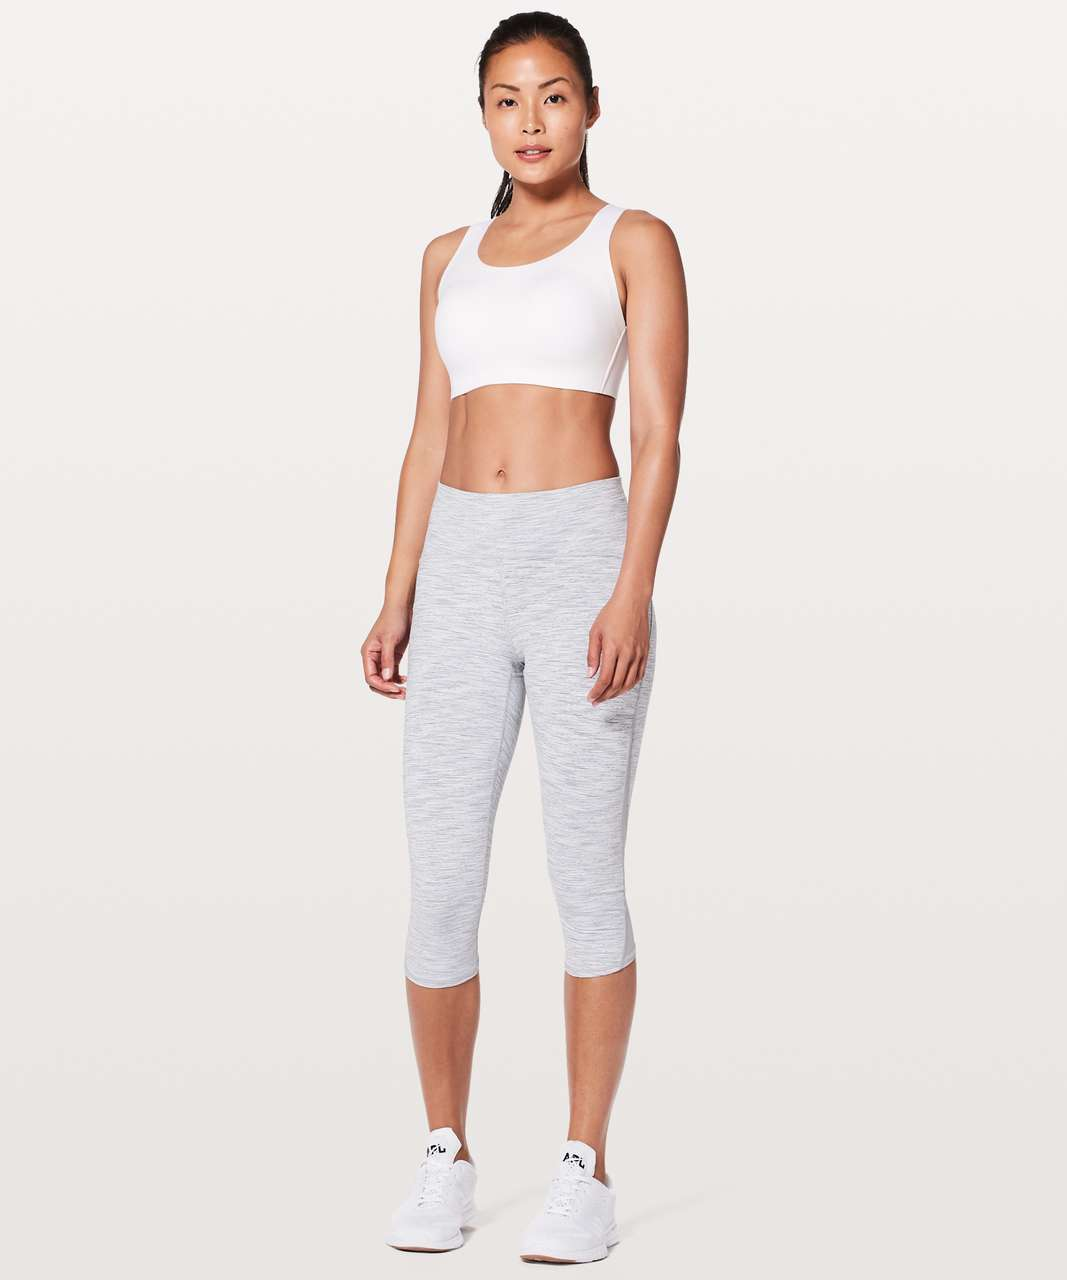 Lululemon Enlite Bra - White